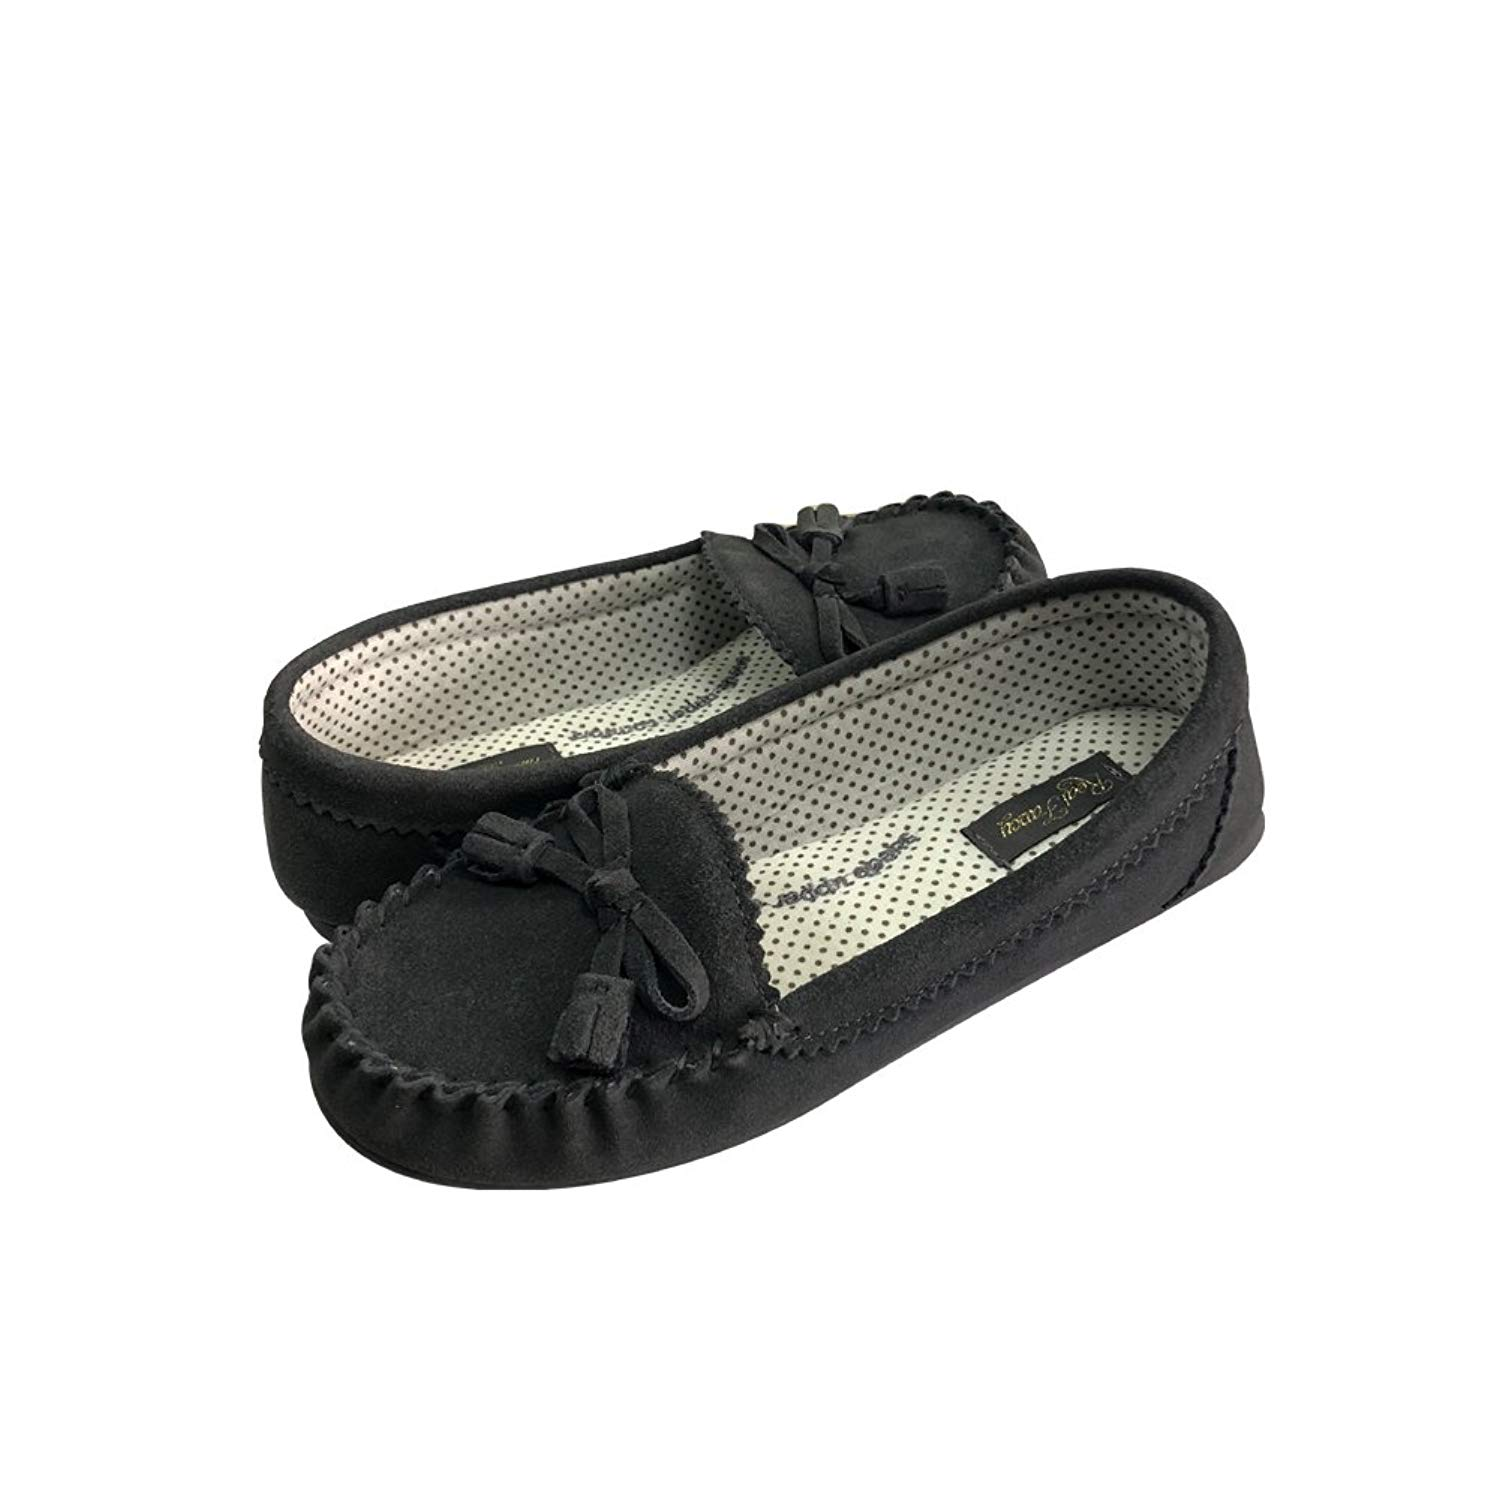 a731a7df4 Get Quotations · RealFancy Moccasin Slippers for Women Flat Casual  Comfortable Loafer Shoes Womens Moccasin Slippers Spring Moccasins Shoes